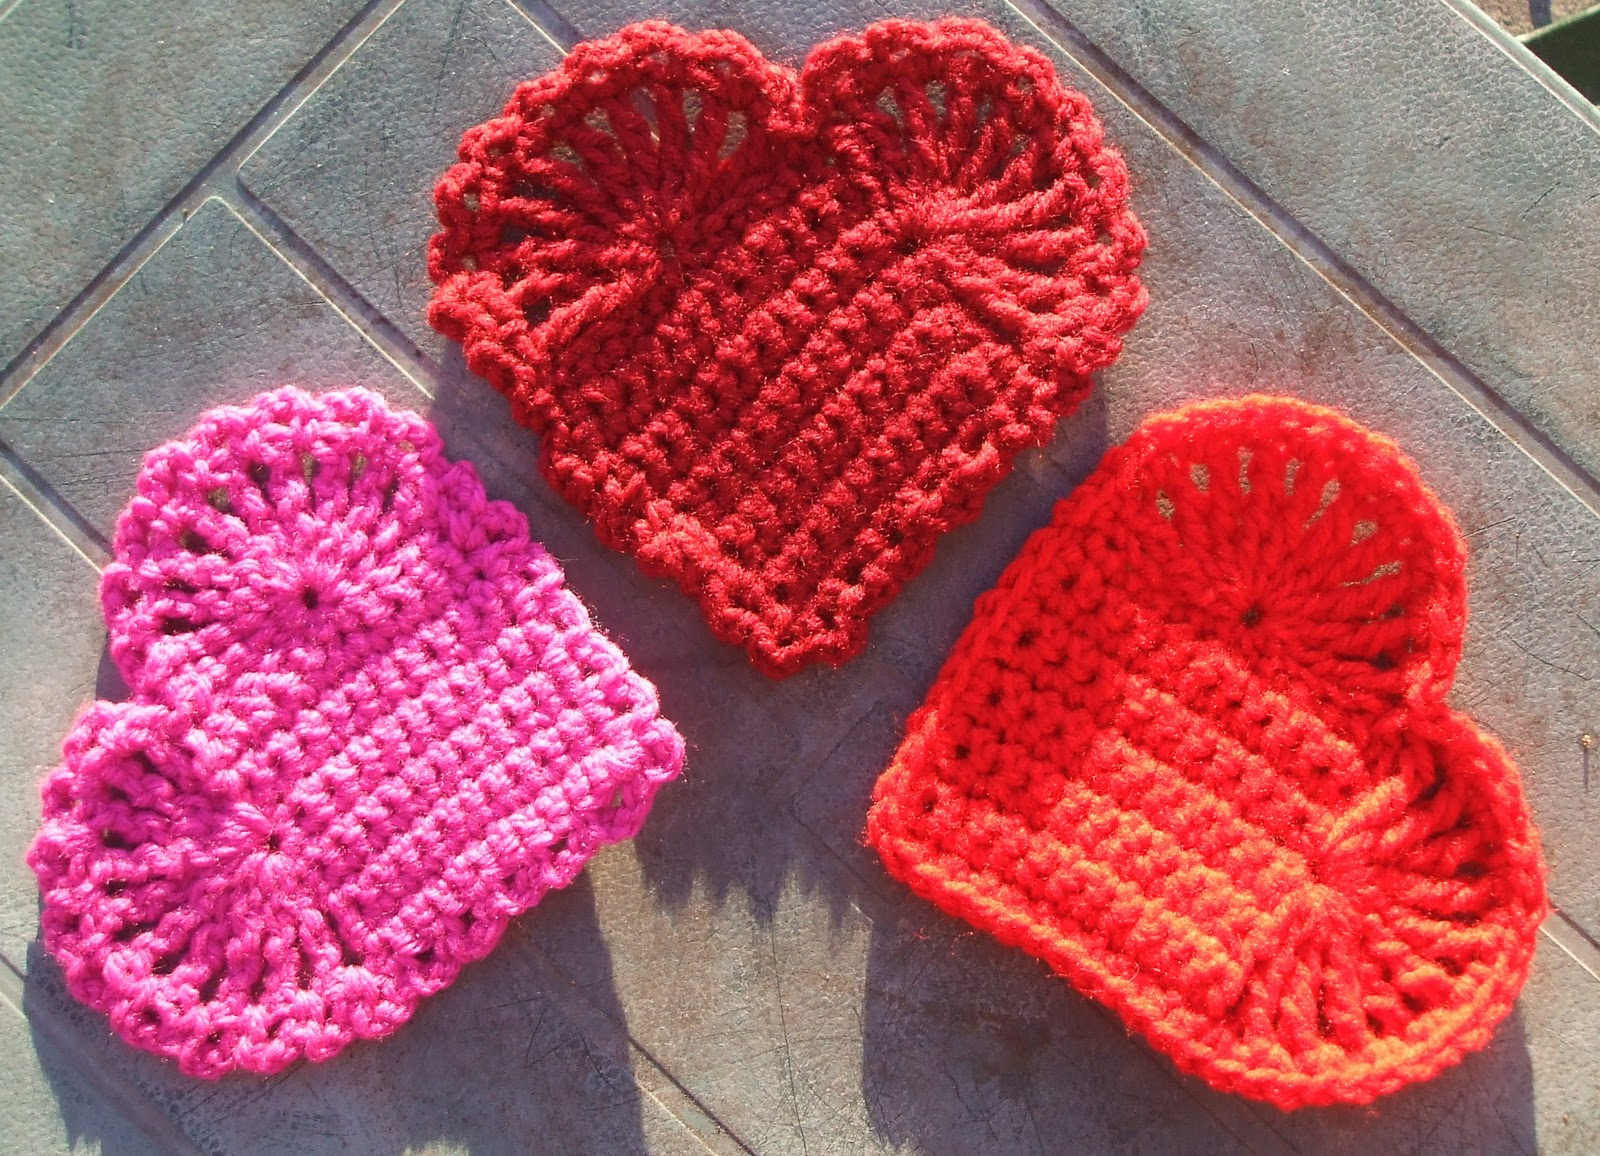 Crocheting Or Knitting : Art of Crochet by Teresa - Little Crocheted Hearts